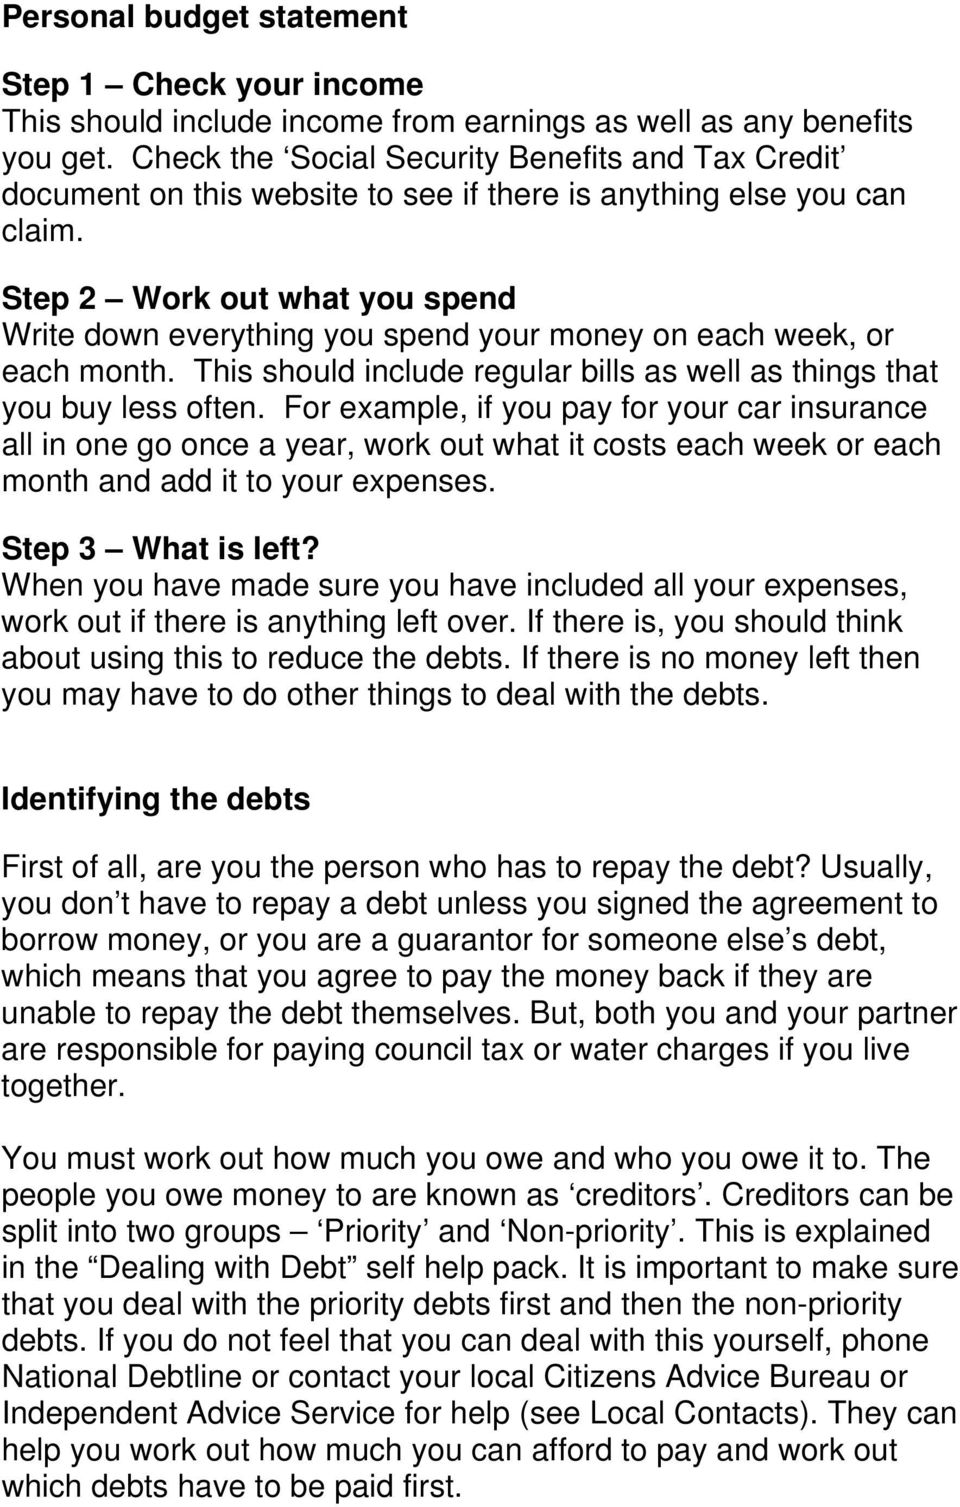 Step 2 Work out what you spend Write down everything you spend your money on each week, or each month. This should include regular bills as well as things that you buy less often.